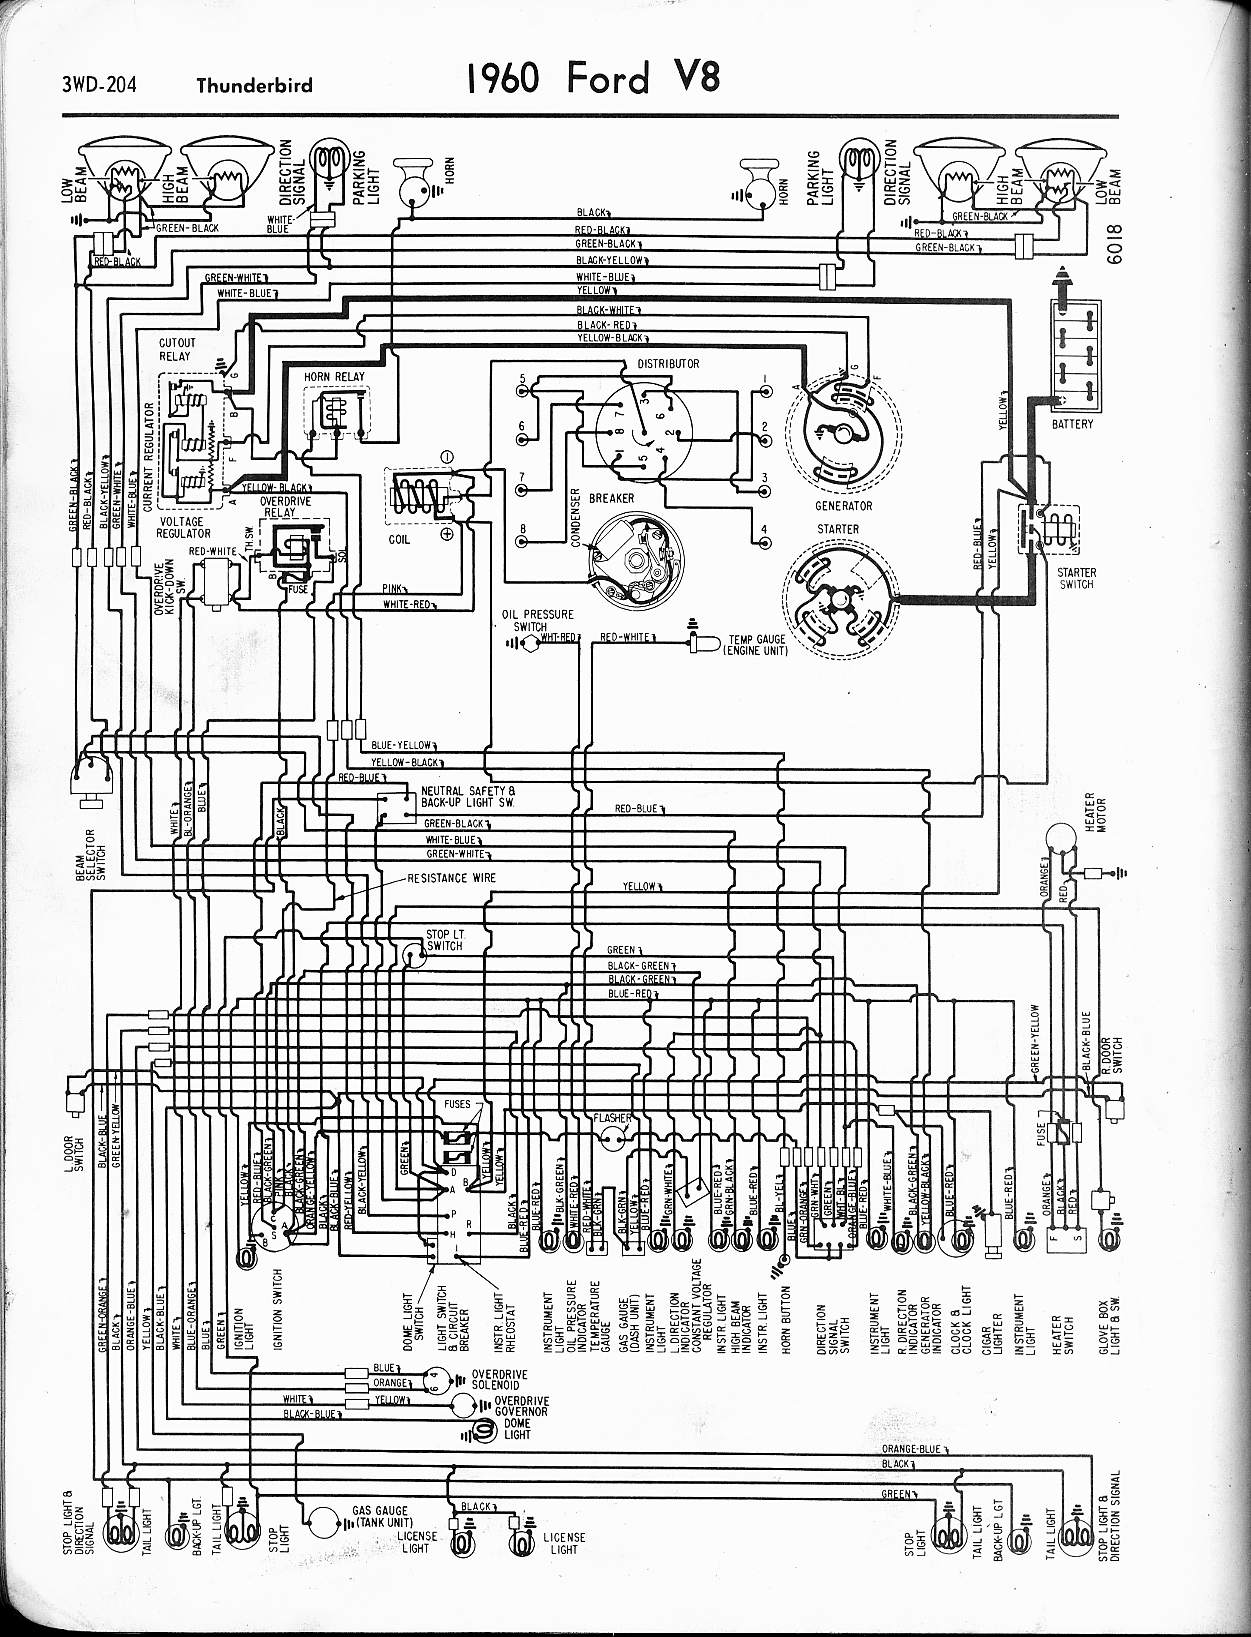 1960 Ford Truck Wiring Diagrams Diagram Online 66 Thunderbird F100 Automotive 1959